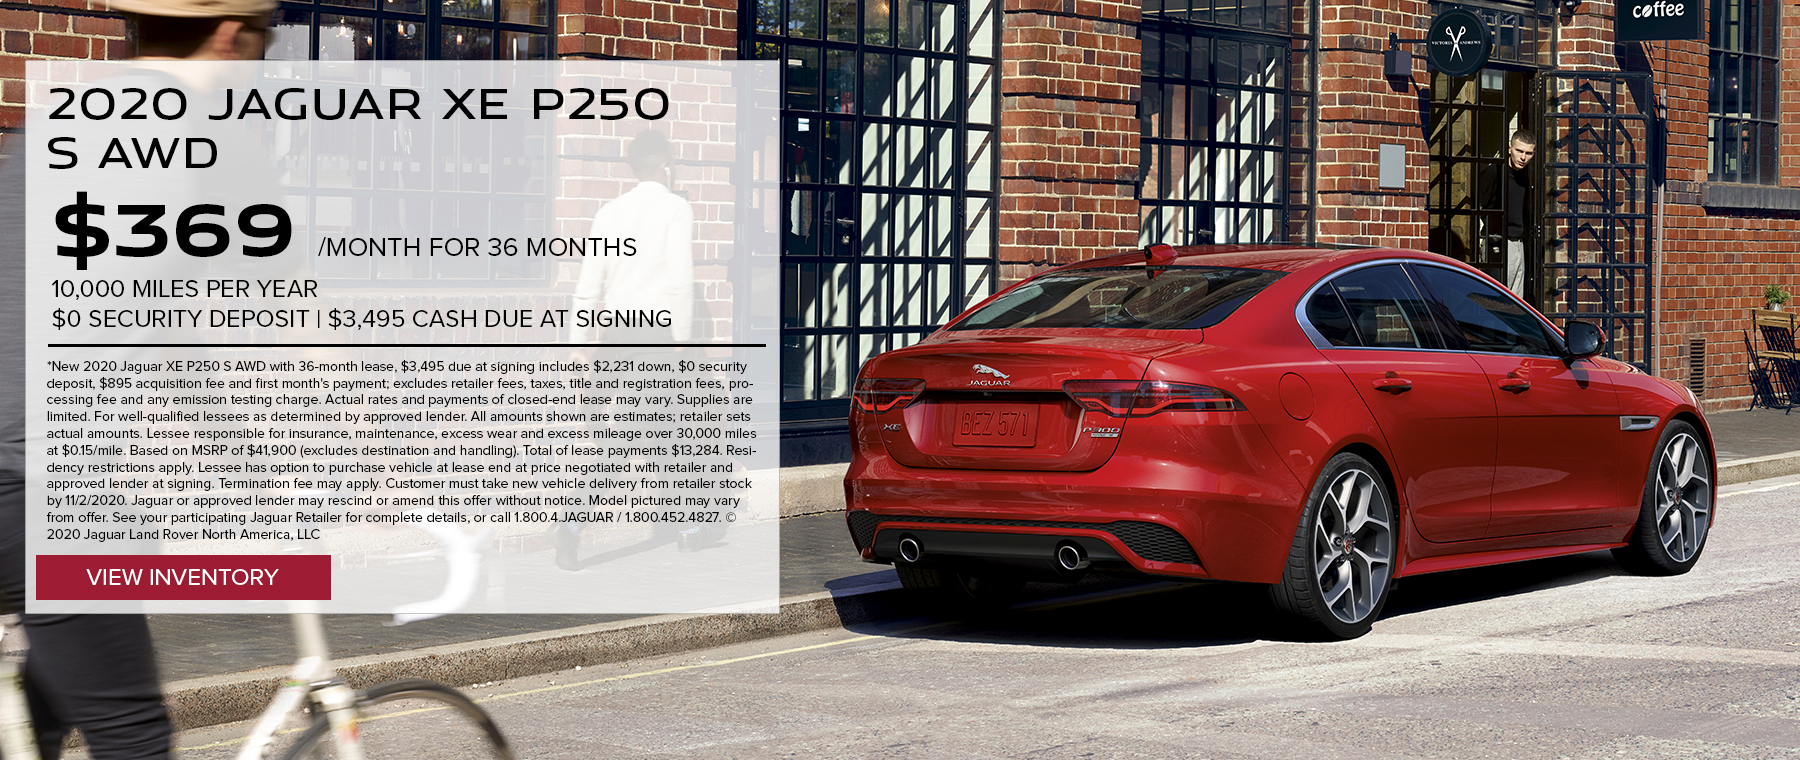 2020 JAGUAR XE P250 S AWD. $369 PER MONTH. 36 MONTH LEASE TERM. $3,495 CASH DUE AT SIGNING. $0 SECURITY DEPOSIT. 10,000 MILES PER YEAR. EXCLUDES RETAILER FEES, TAXES, TITLE AND REGISTRATION FEES, PROCESSING FEE AND ANY EMISSION TESTING CHARGE. OFFER ENDS 11/2/2020.